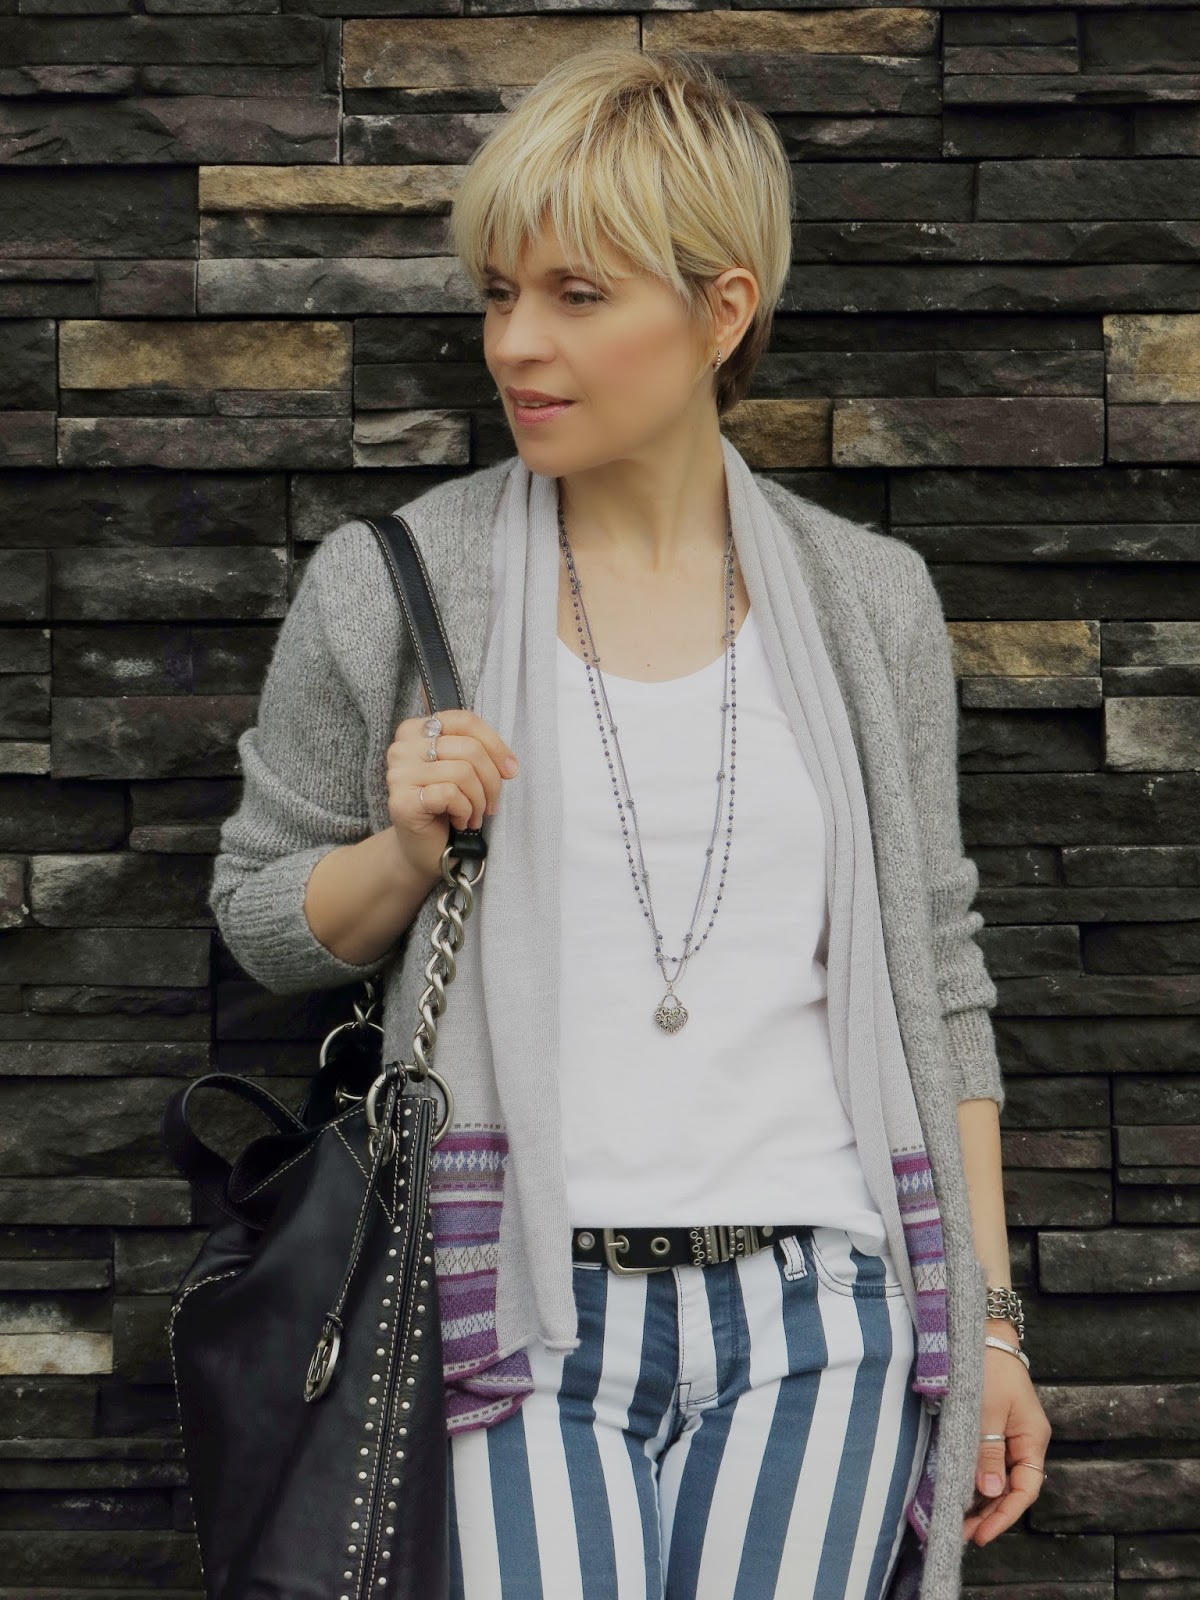 women's short hairstyle and outfit accessories